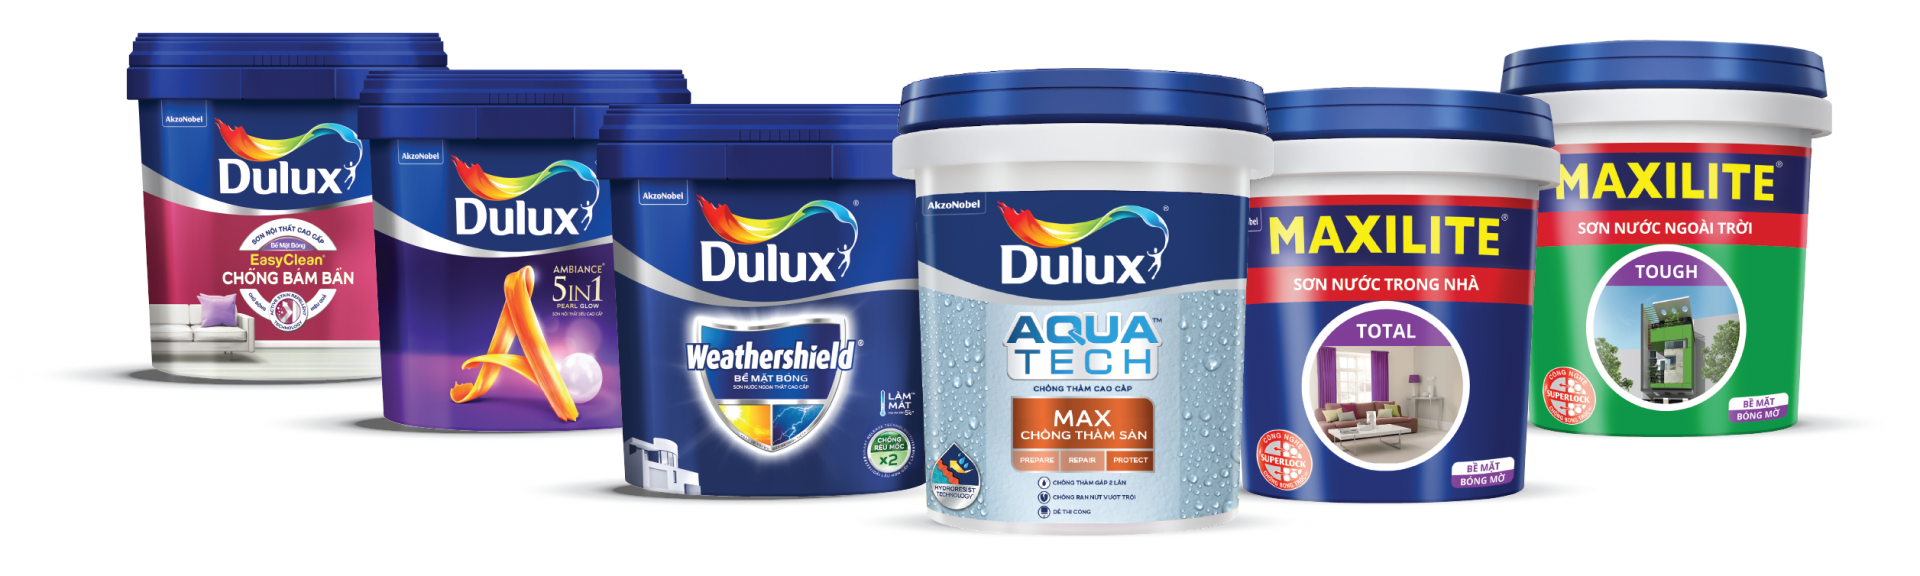 maxilite and dulux to launch new products to optimise customer experience